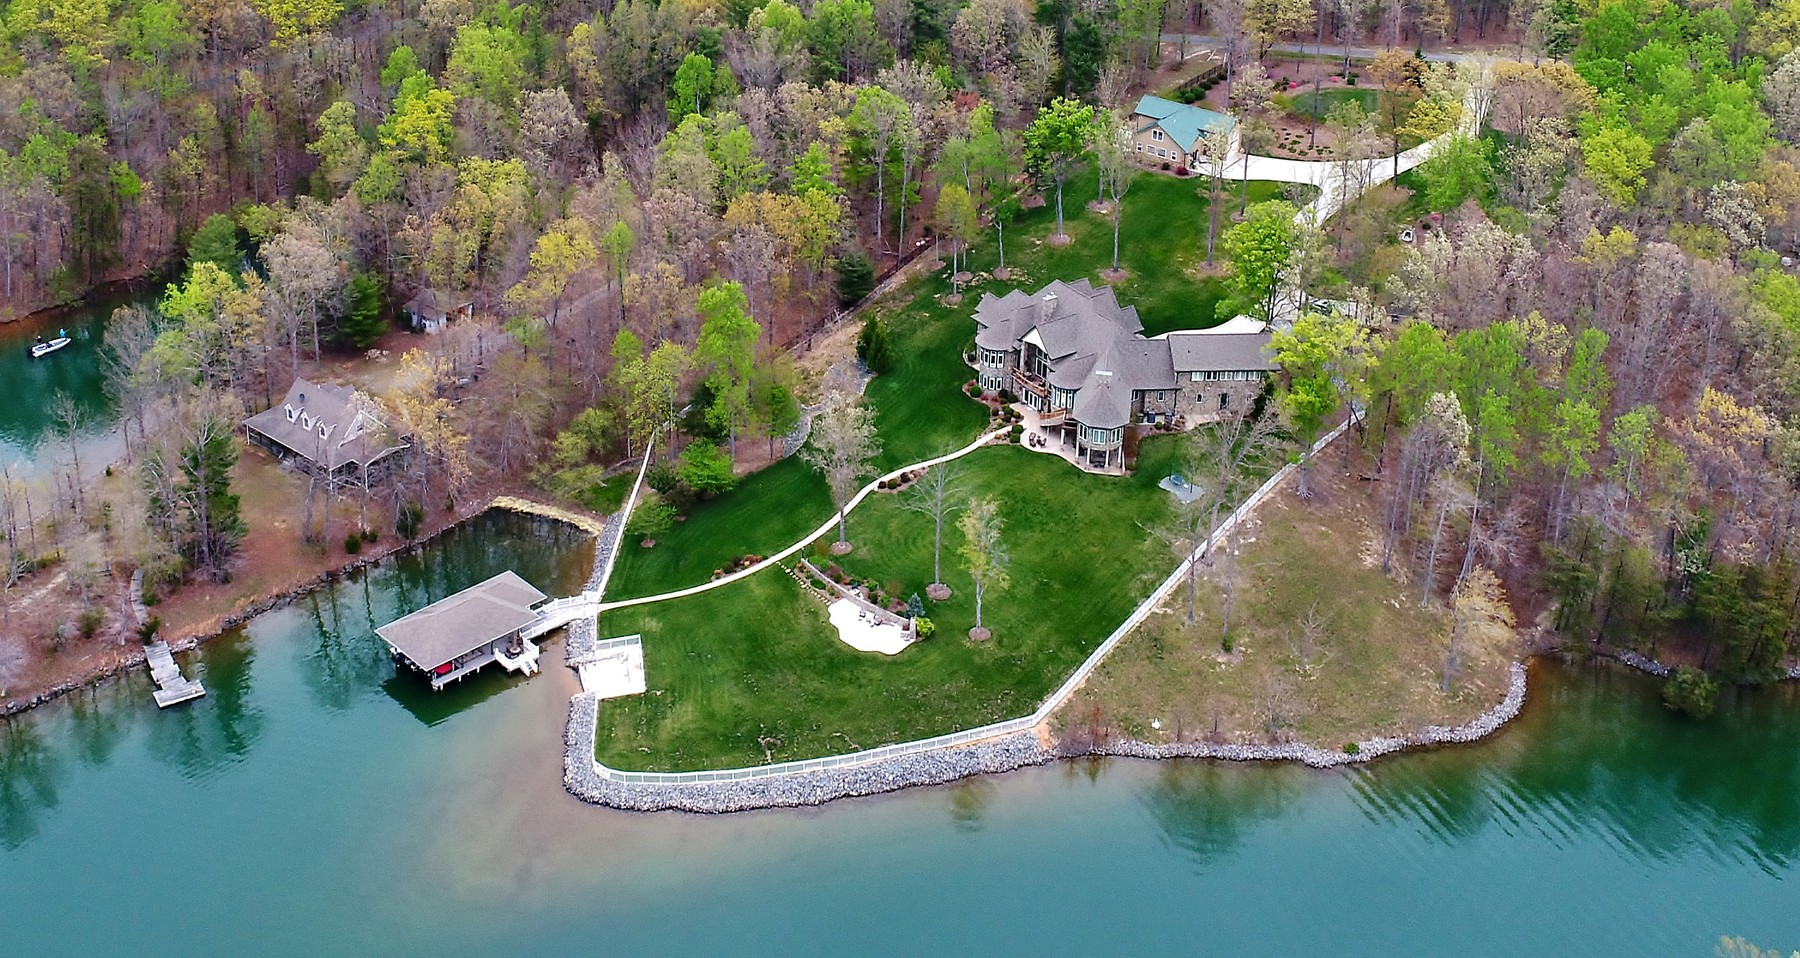 Single Family Home for Sale at Waterfront Estate at Smith Mountain Lake 1114 Shady Point Rd Huddleston, Virginia, 24104 United States